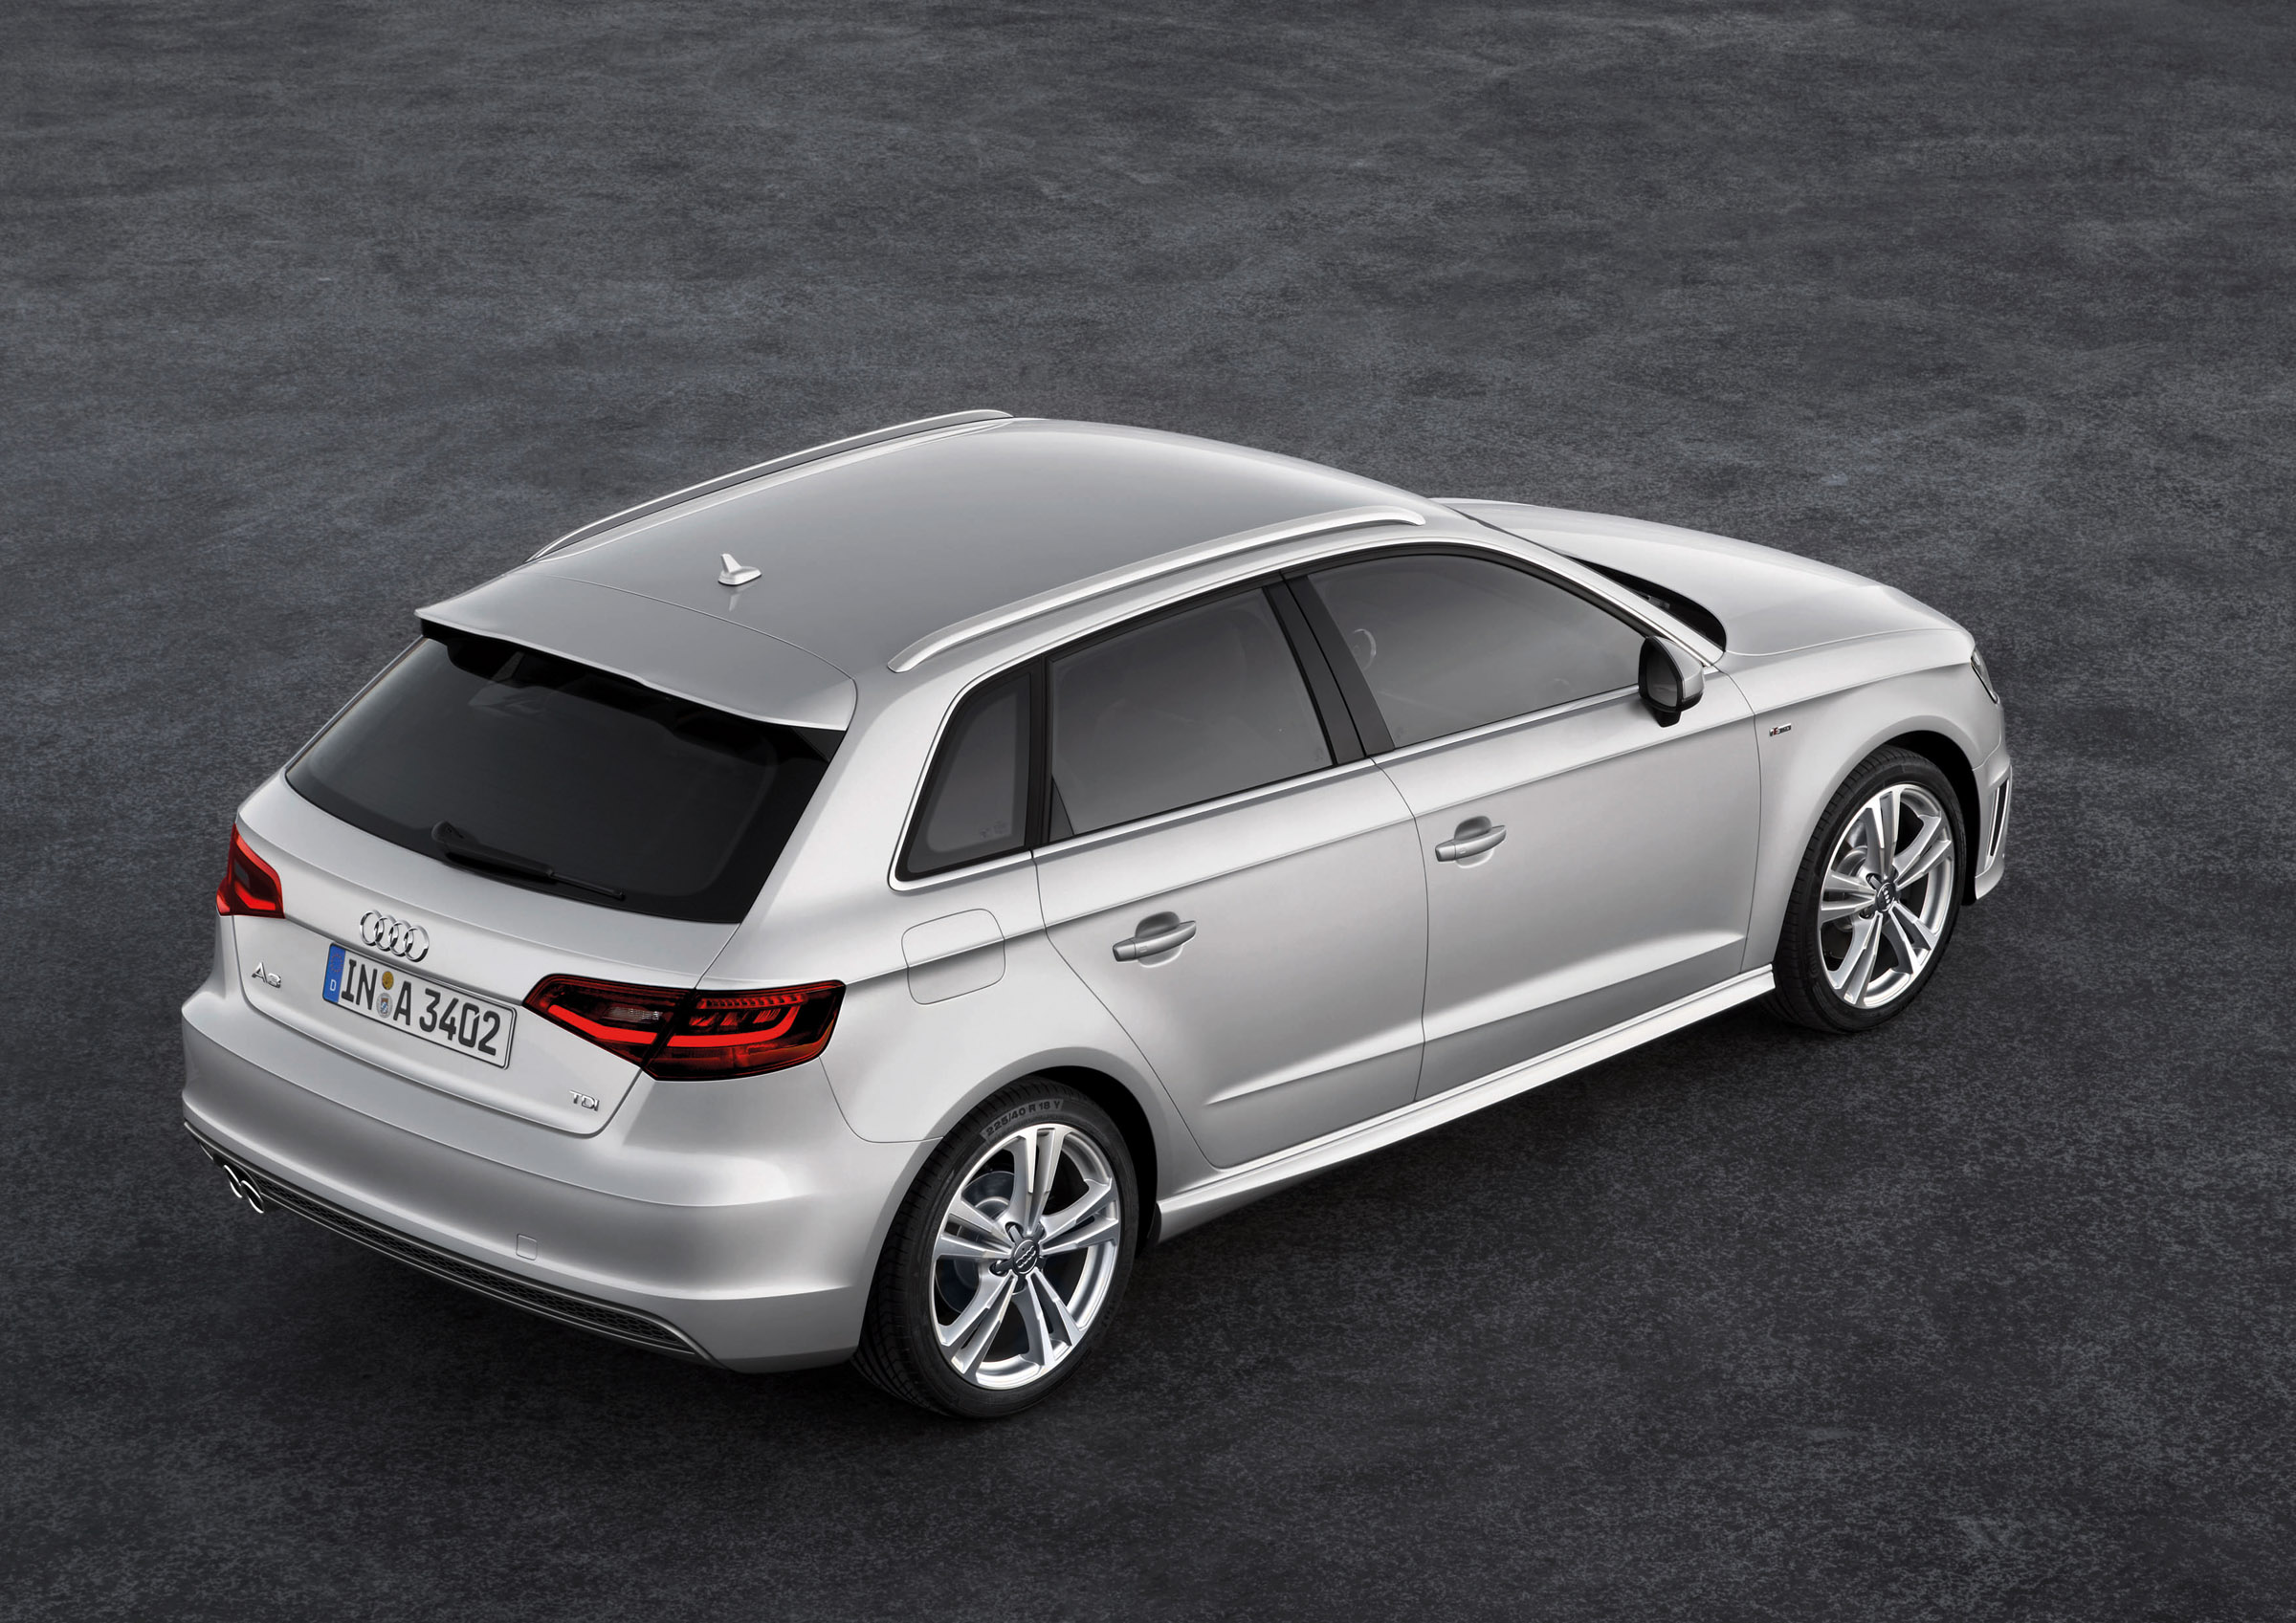 Pictures of audi a3 (8v) 2014 #5